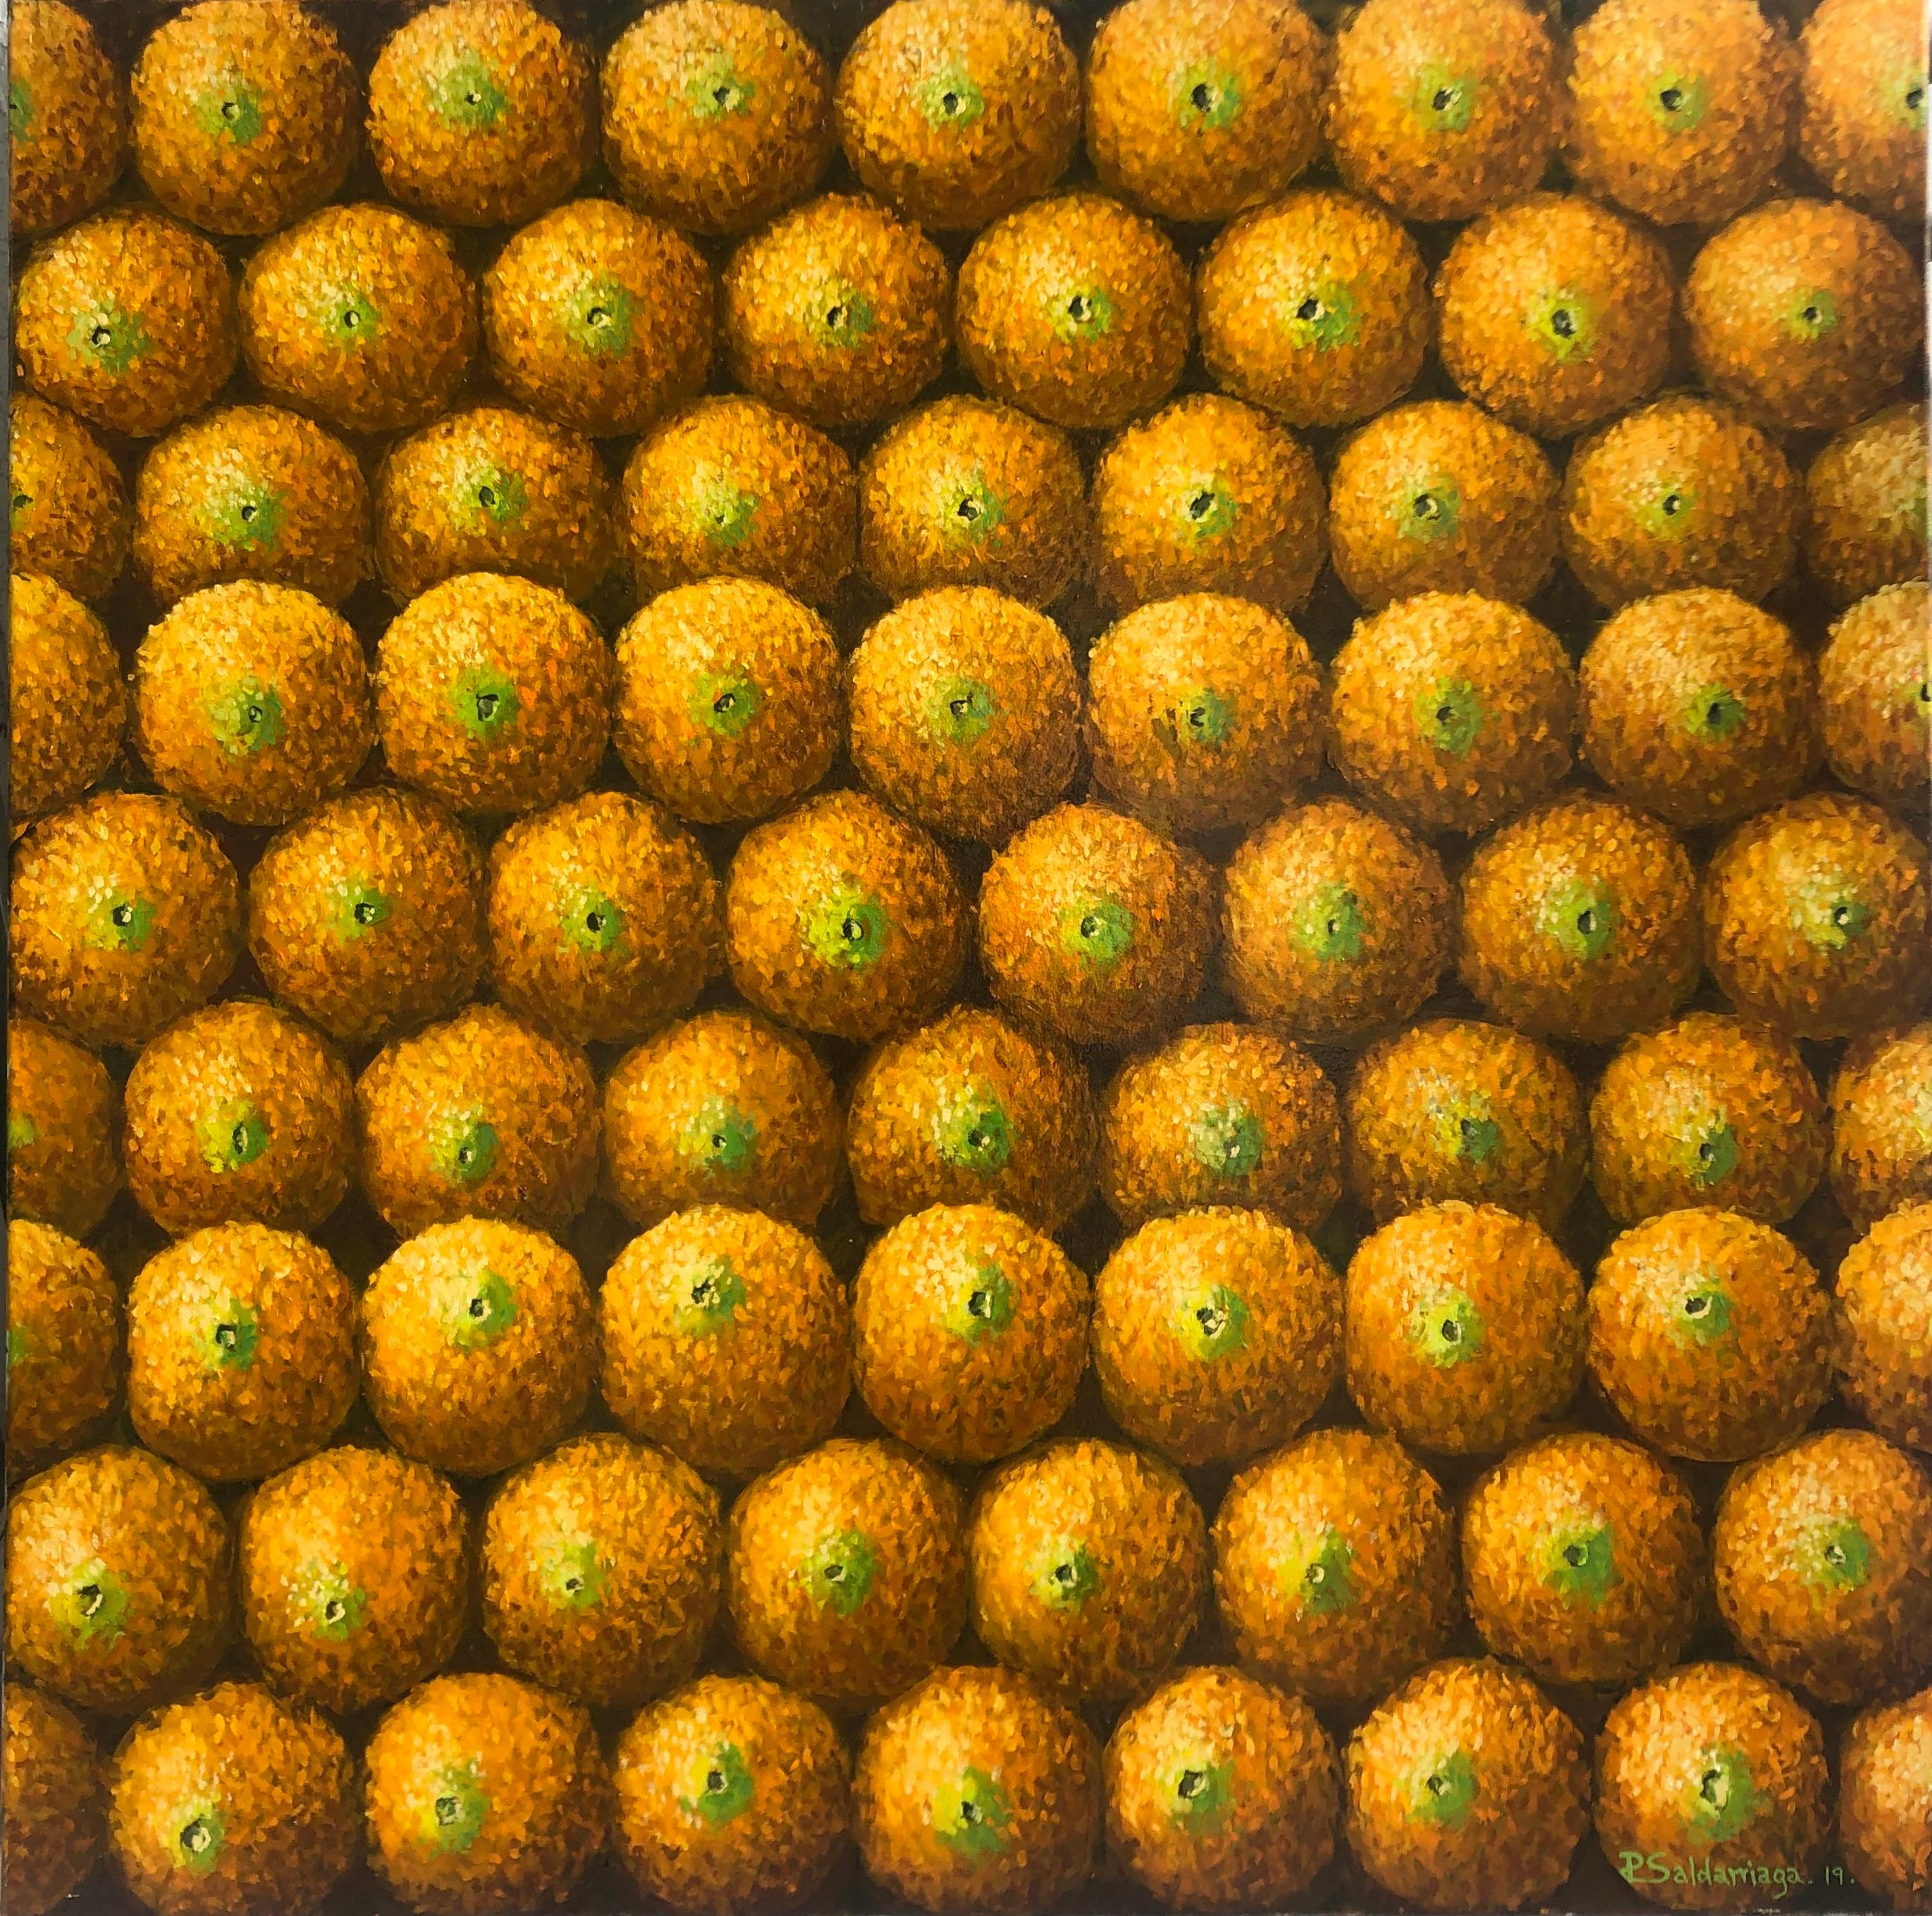 Wall Of Oranges